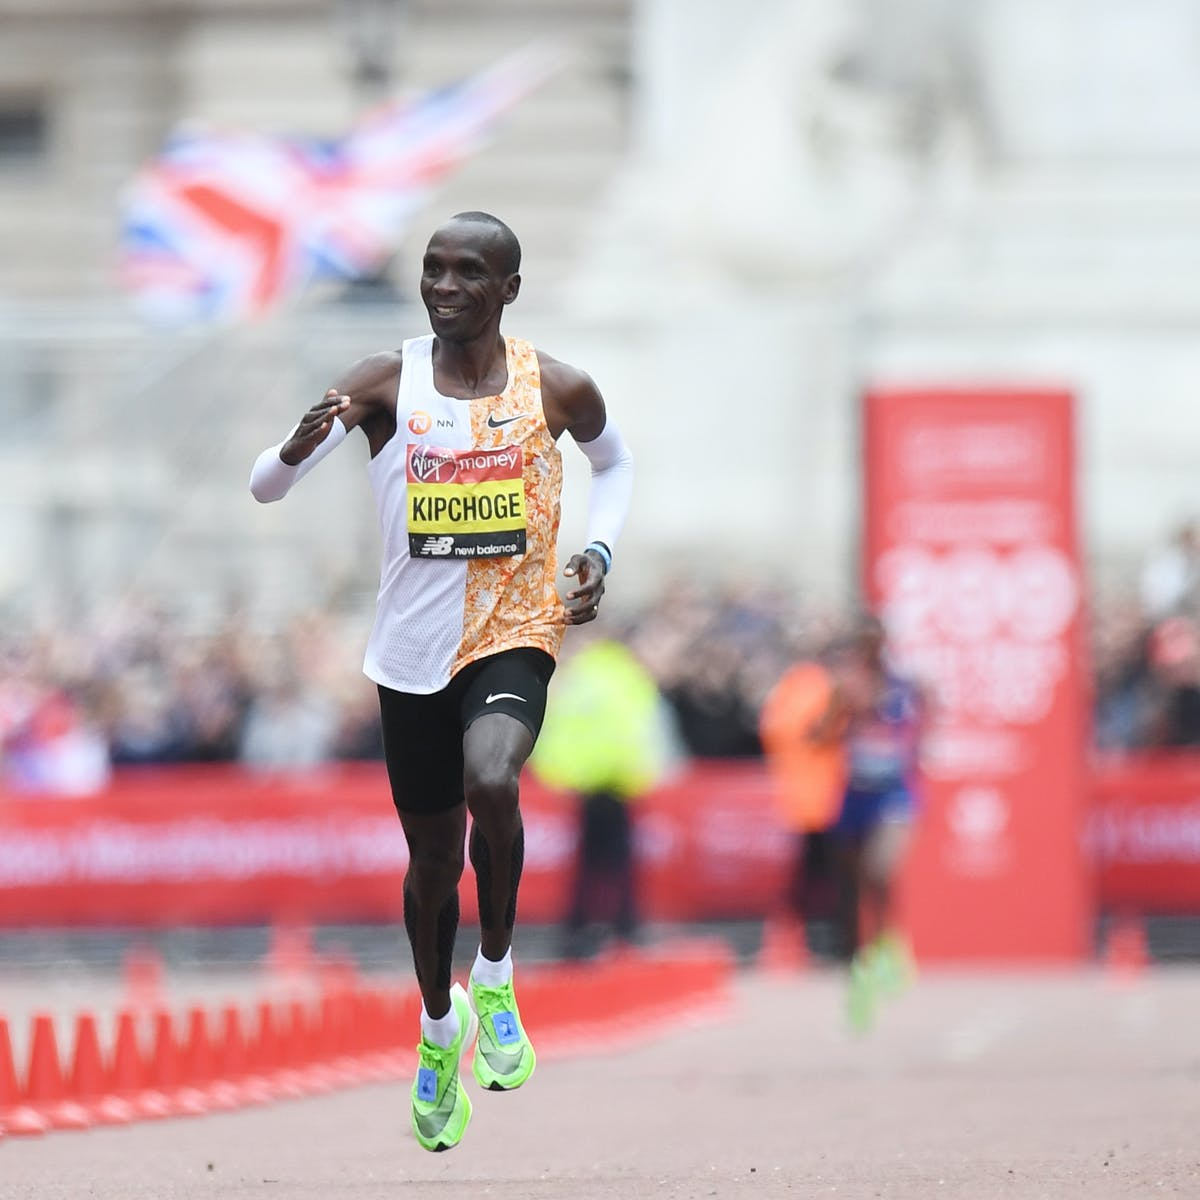 Can Eliud Kipchoge run a sub-2hr marathon? It all comes down to 15 extraordinary seconds